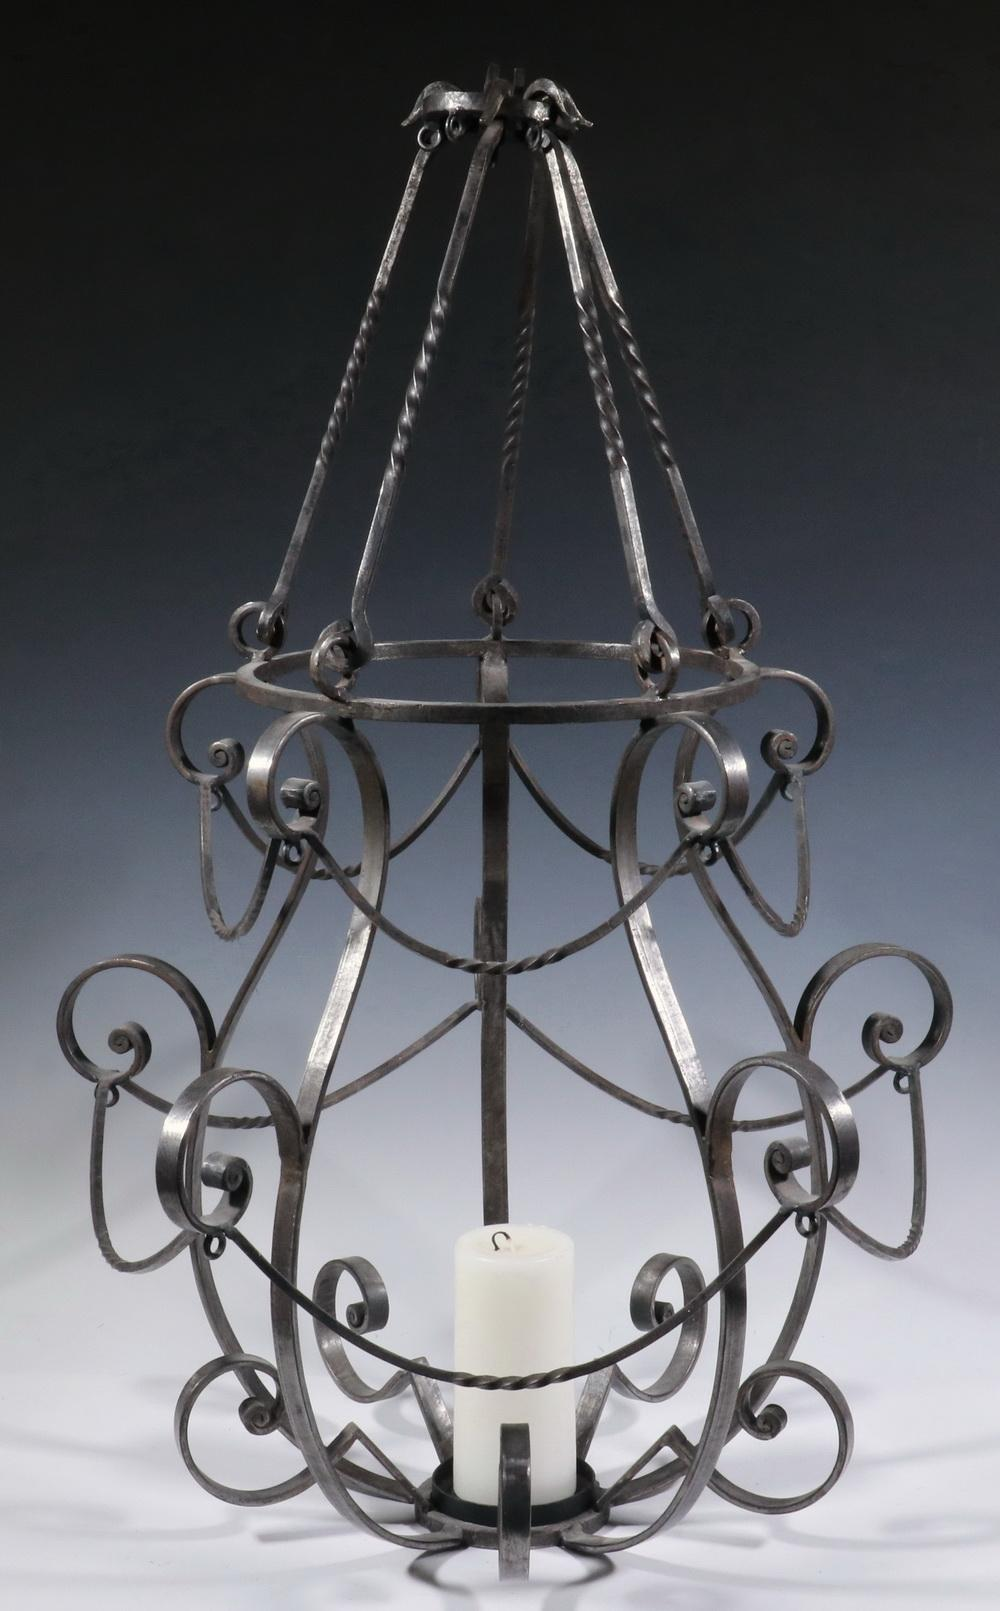 Sold Price Wrought Iron Candle Chandelier April 4 0120 10 00 Am Edt